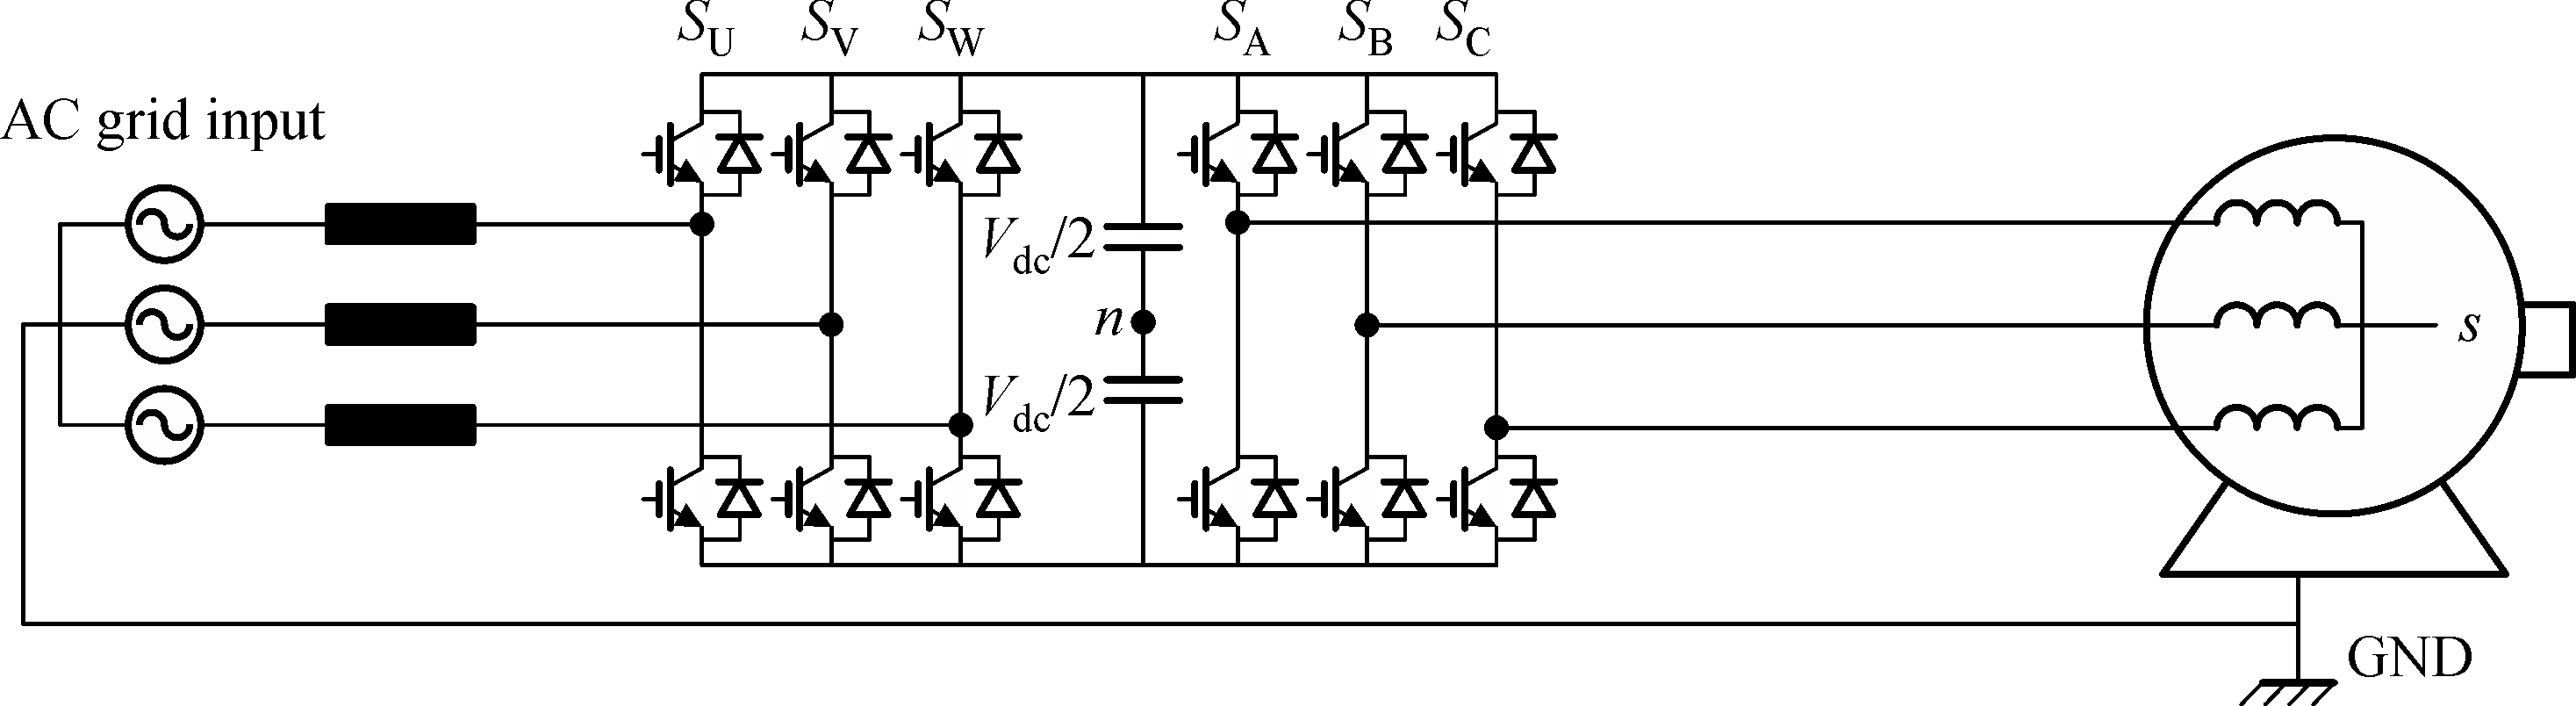 Electromagnetic Interference Modeling And Suppression Techniques In Rectifier Circuit Is That It Expands Easily Into A Polyphase Version New Window